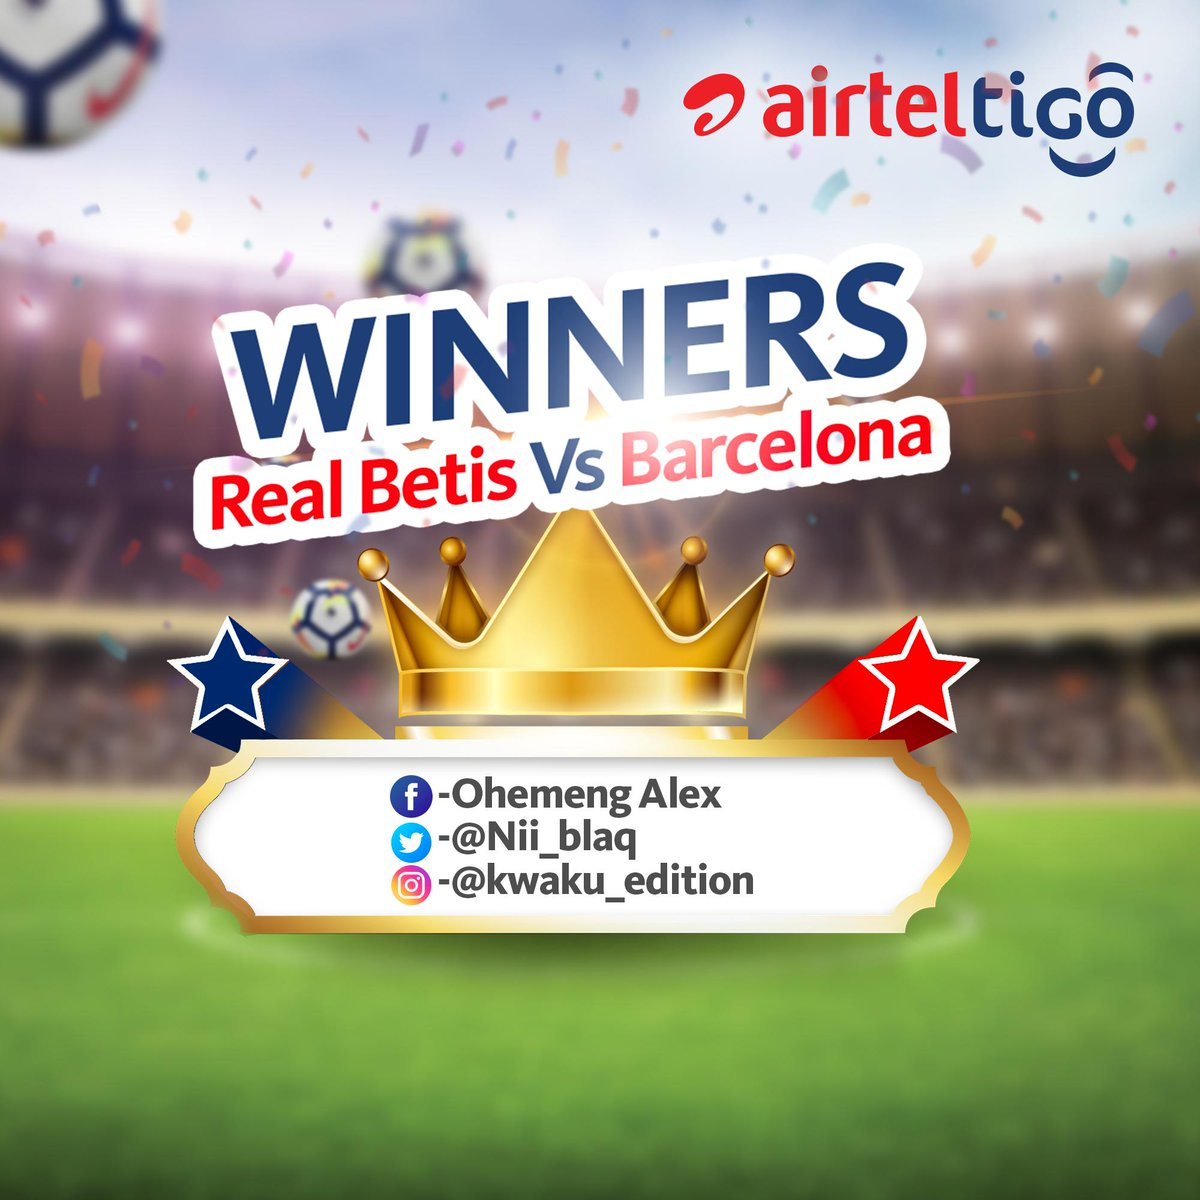 Congratulations guys!   #AirtelTigoMatchDay #LaLigaSantander #RealBetisBarça #PredictandWin